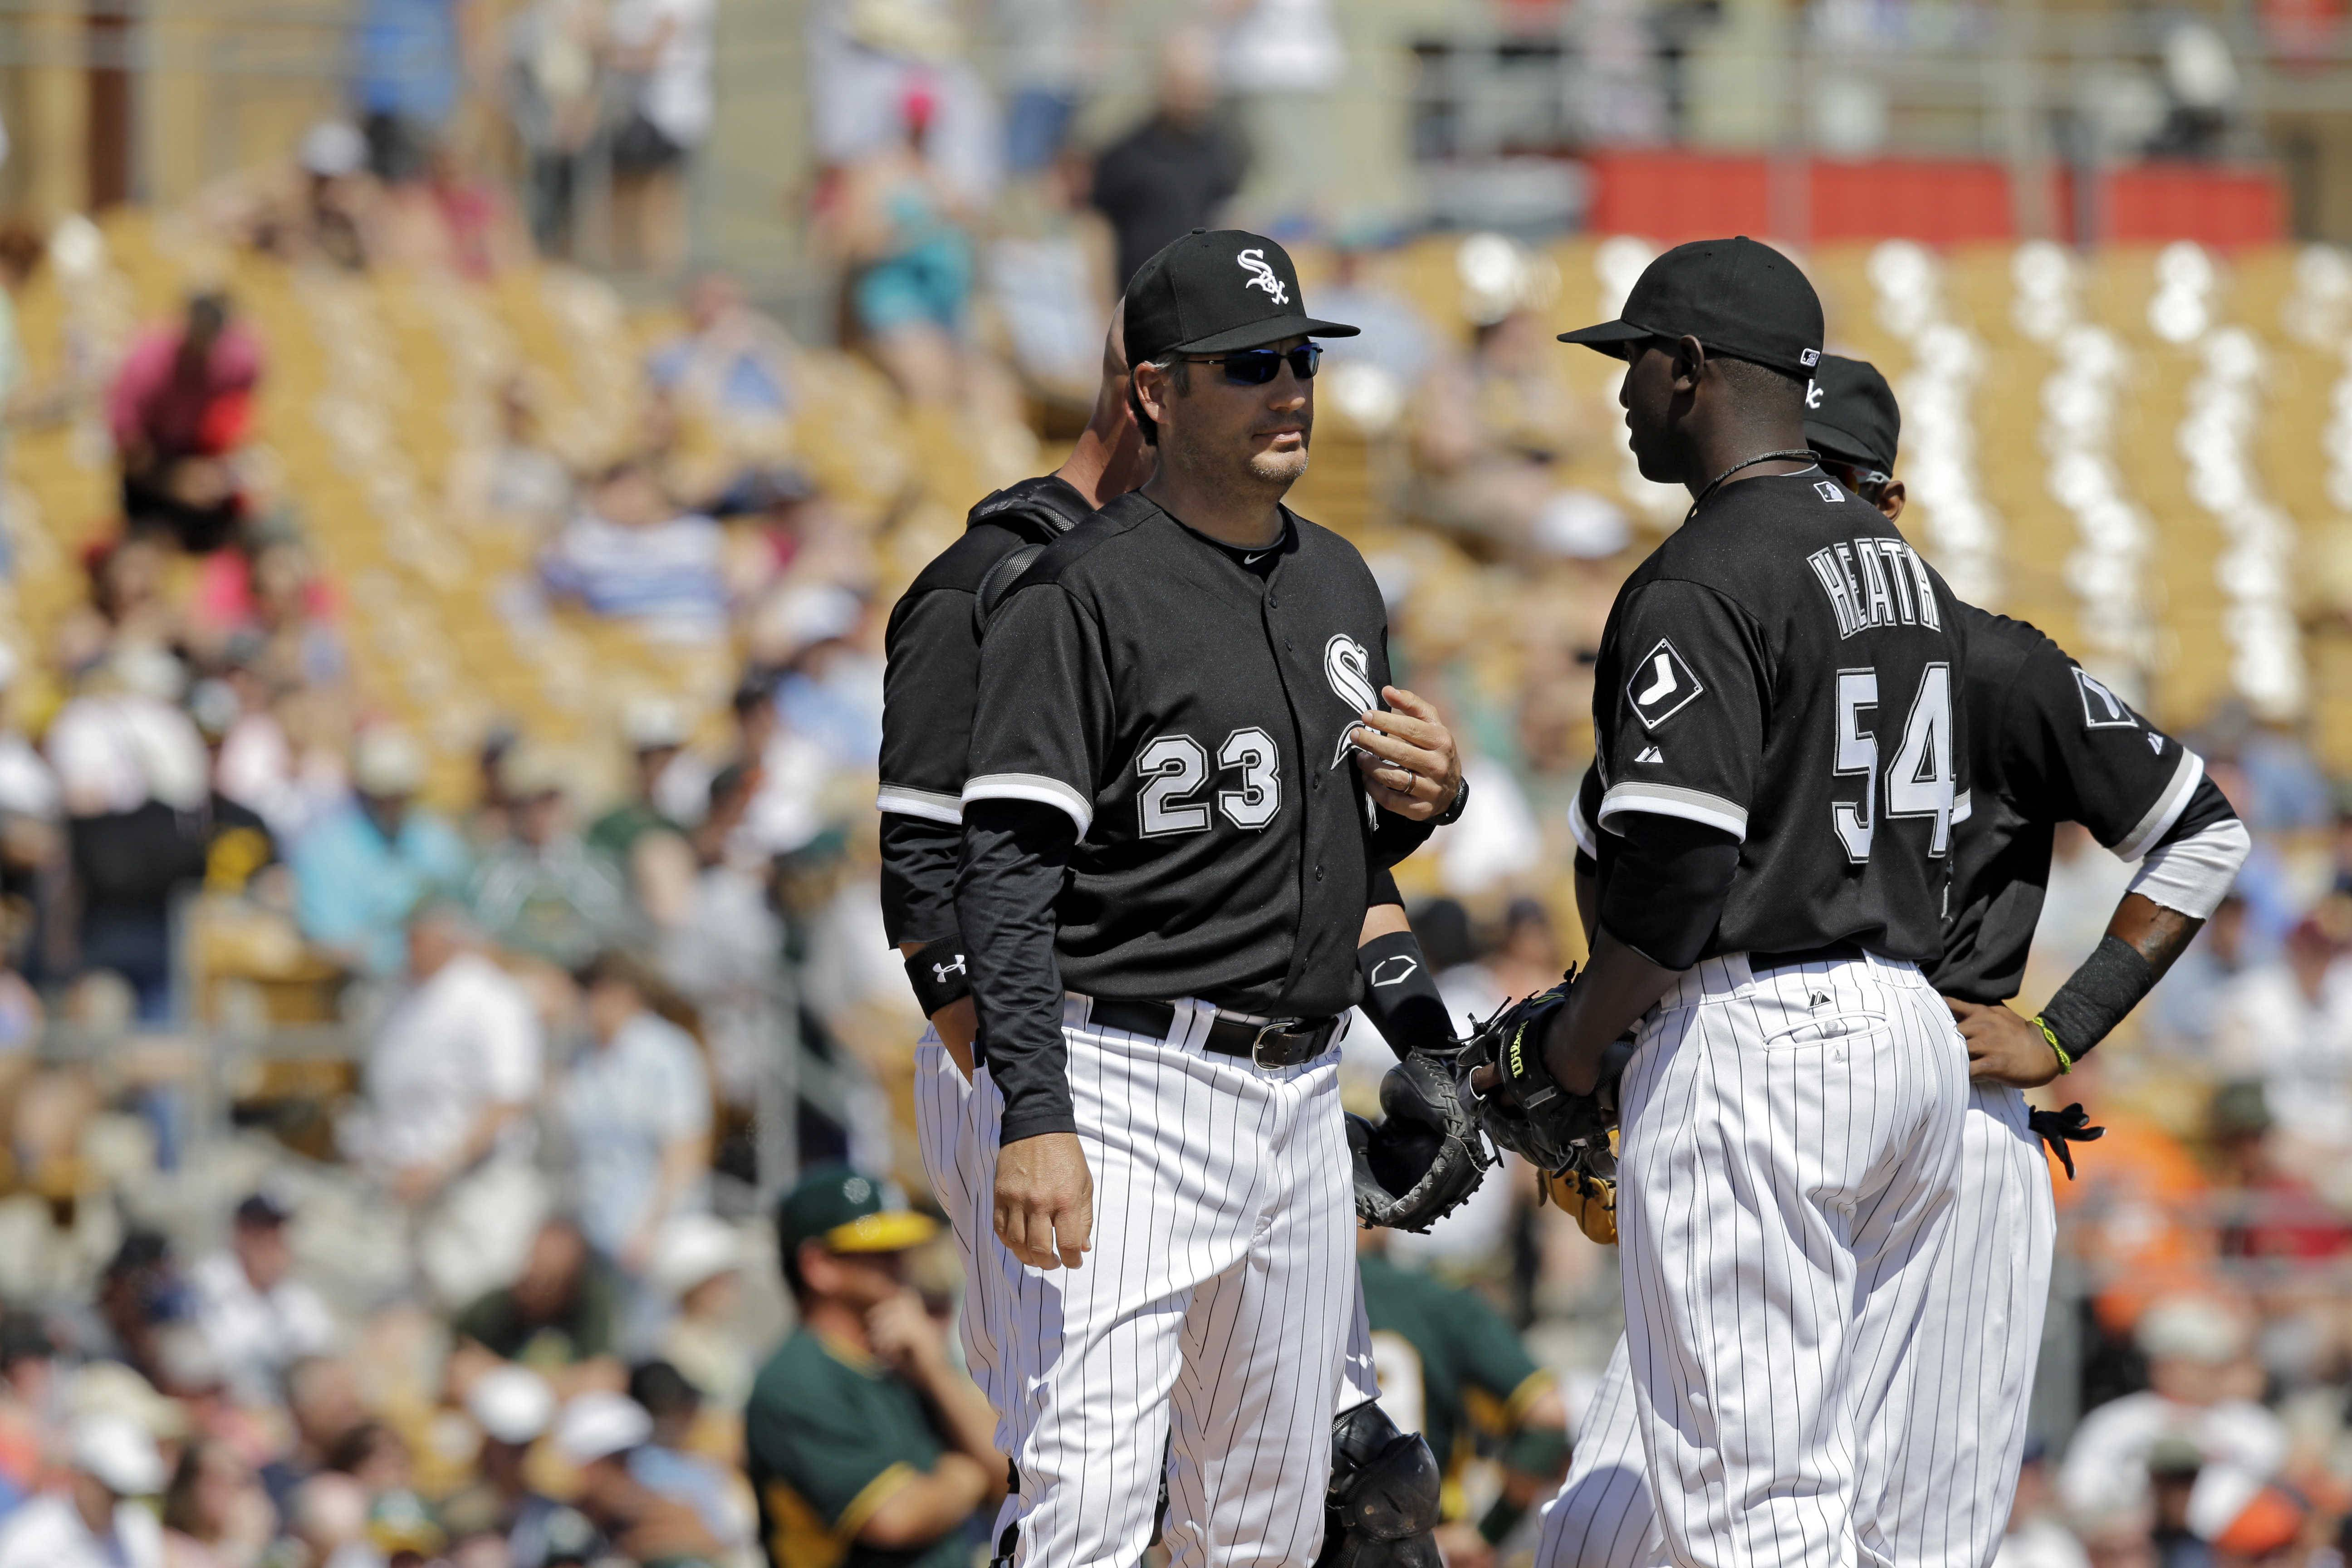 Chicago White Sox manager Robin Ventura (23) talks to relief pitcher Deunte Heath (54) in a spring exhibition baseball game against the Oakland Athletics earlier this month in Glendale, Ariz. (AP Photo/Mark Duncan)